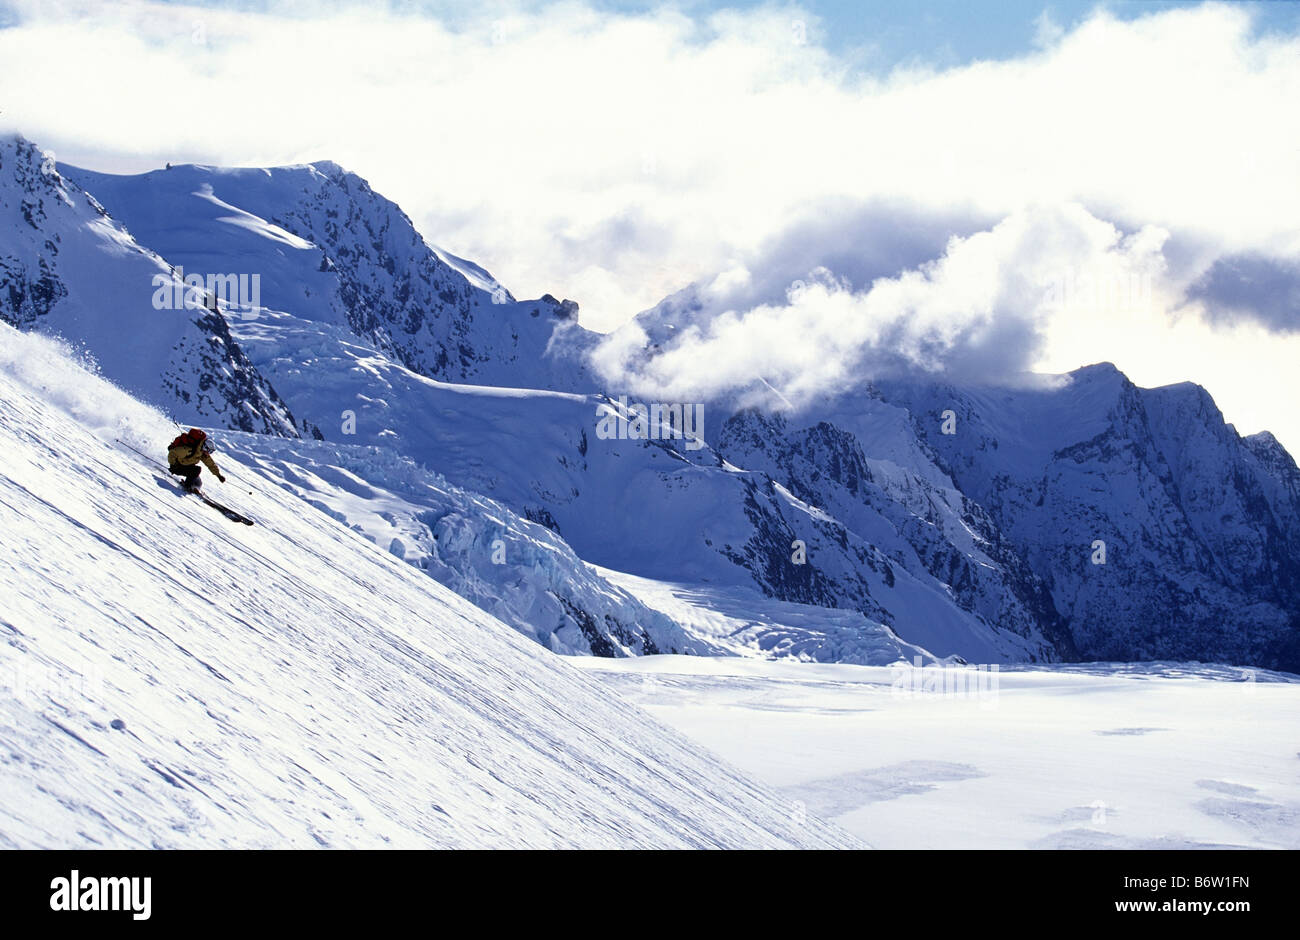 Skier turning an mountain slide with mountain back drop Franz Joseph glacier New Zealand - Stock Image